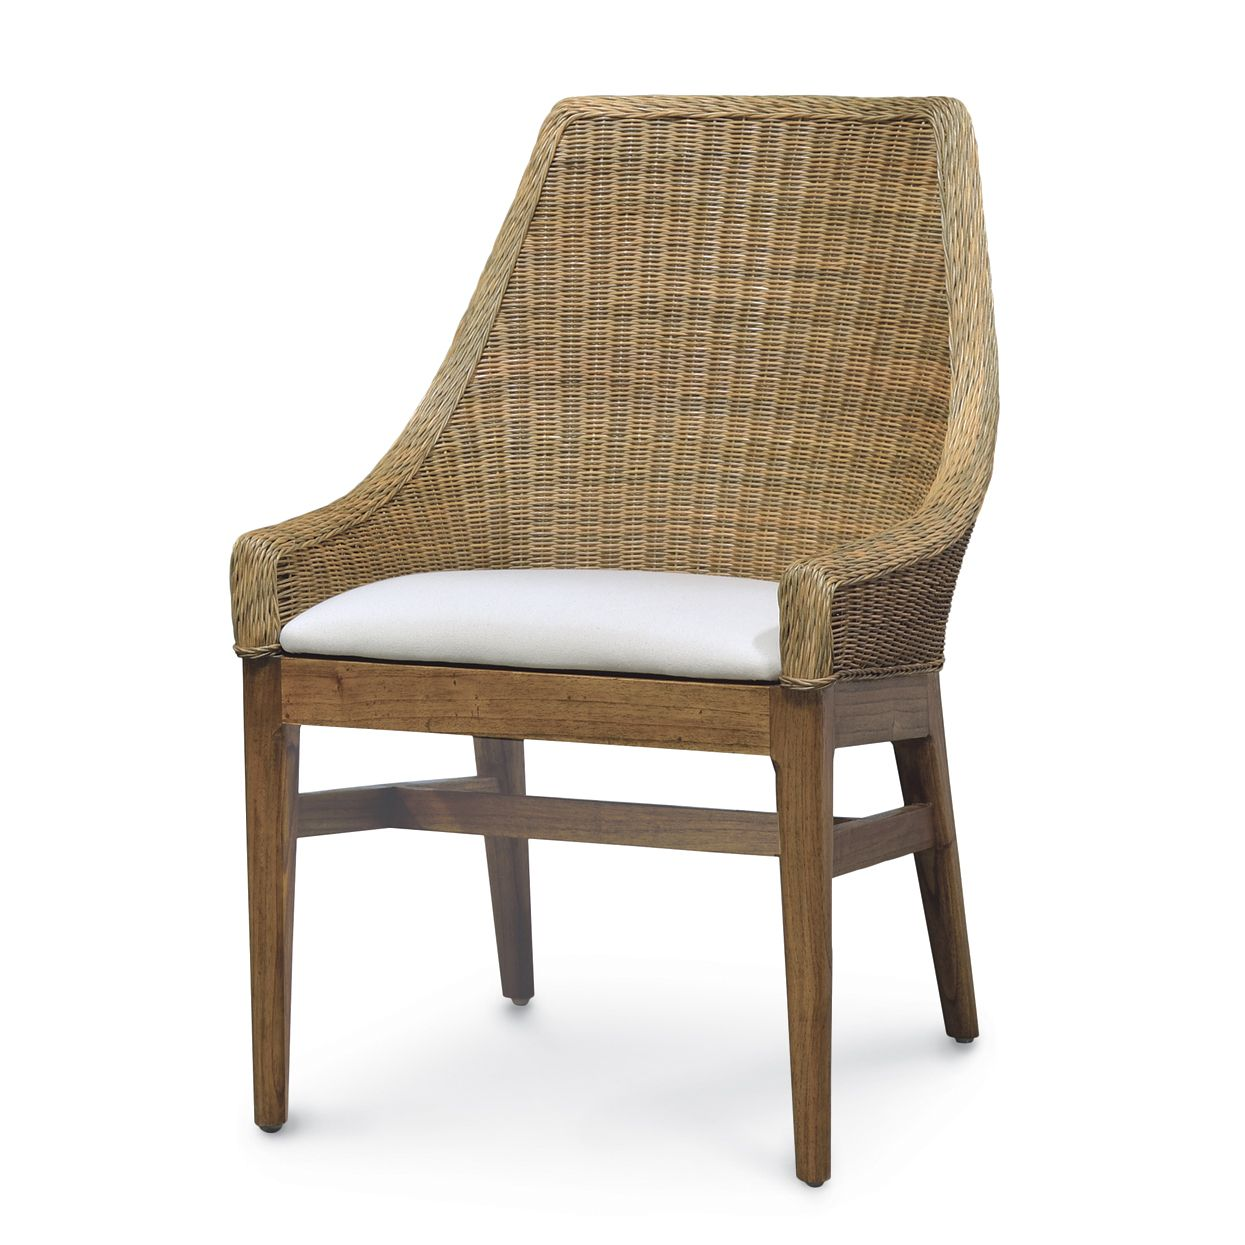 Seagrass Dining Chairs Wicker Round Chair With Seat Cushion Pair Natural